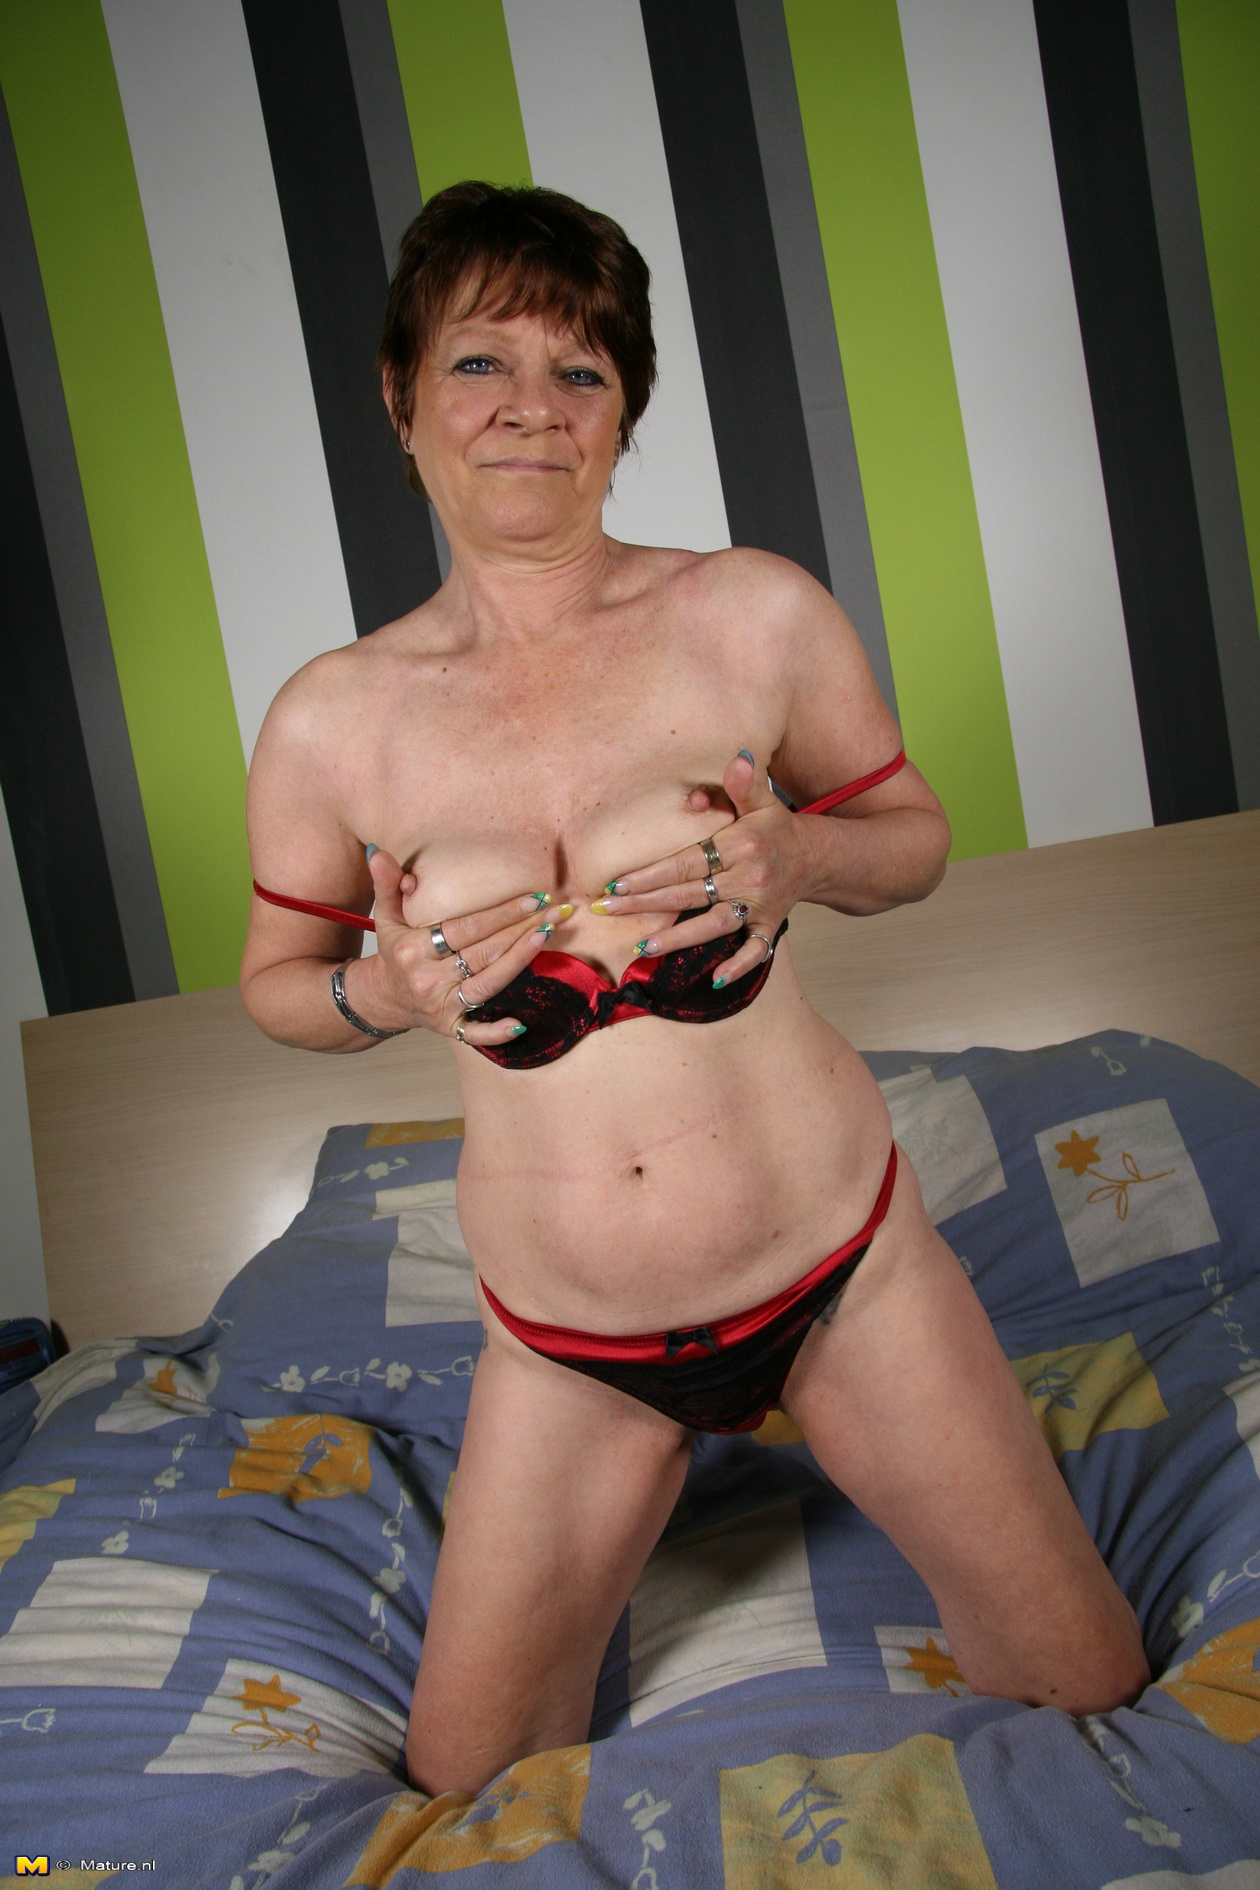 Naughty Dutch Mature Slut Getting Ready To Tease And Please